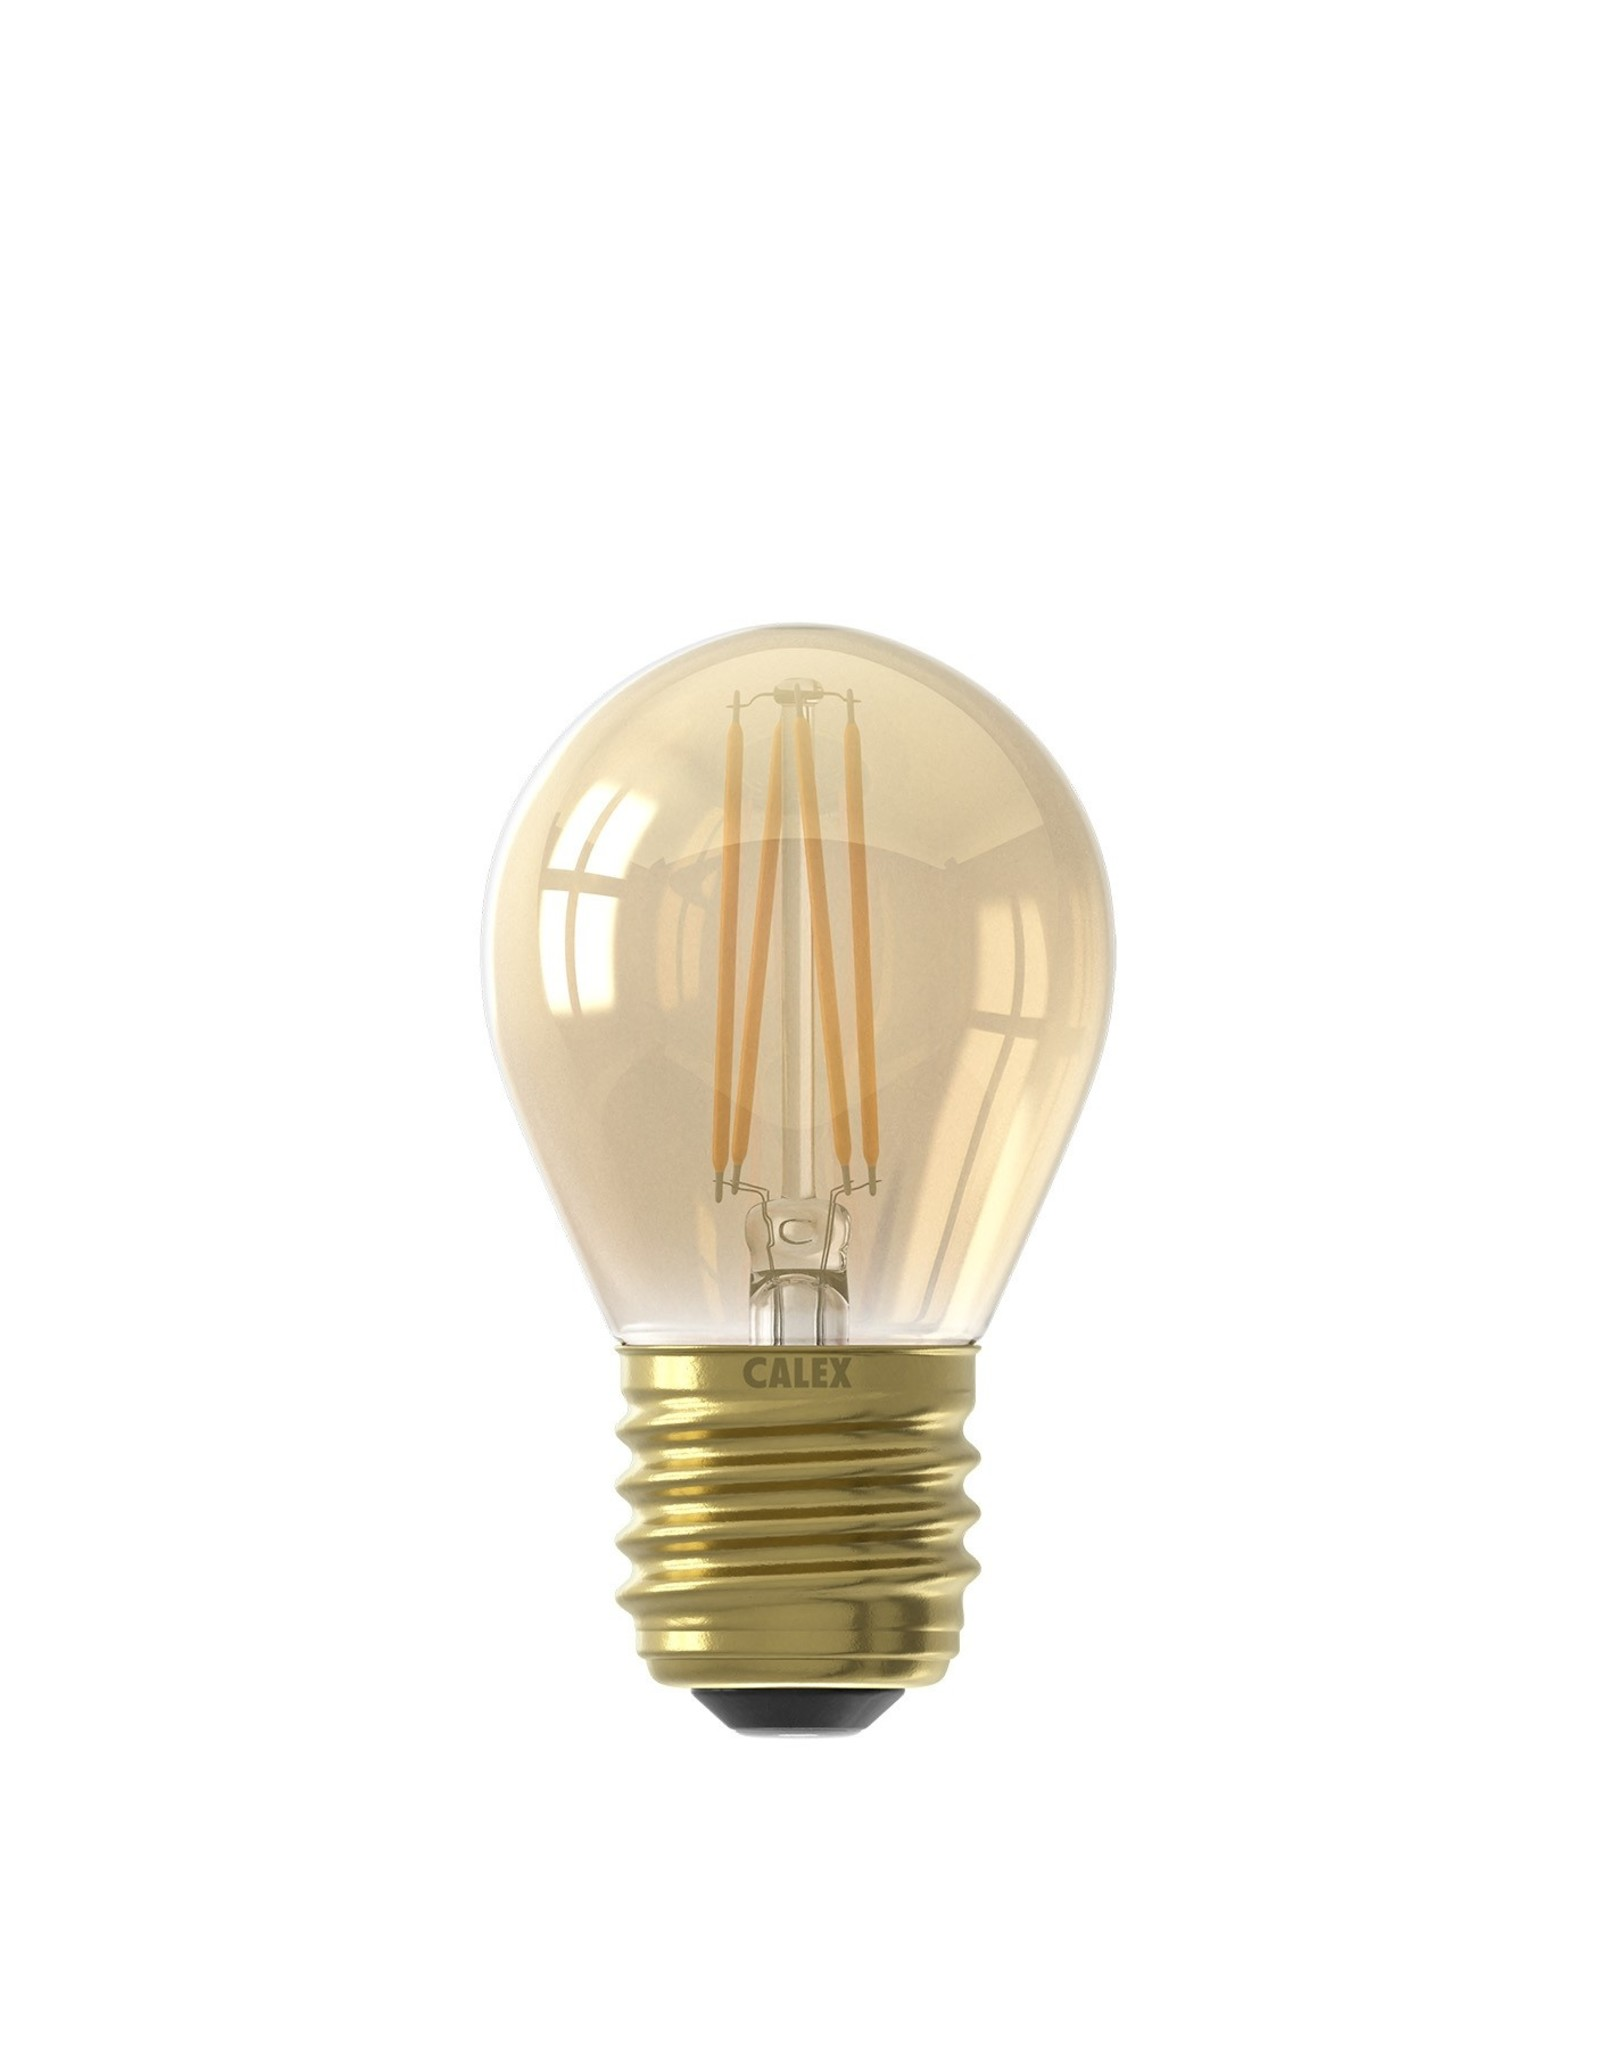 Calex LED kogellamp 35W E27-gold-2100k